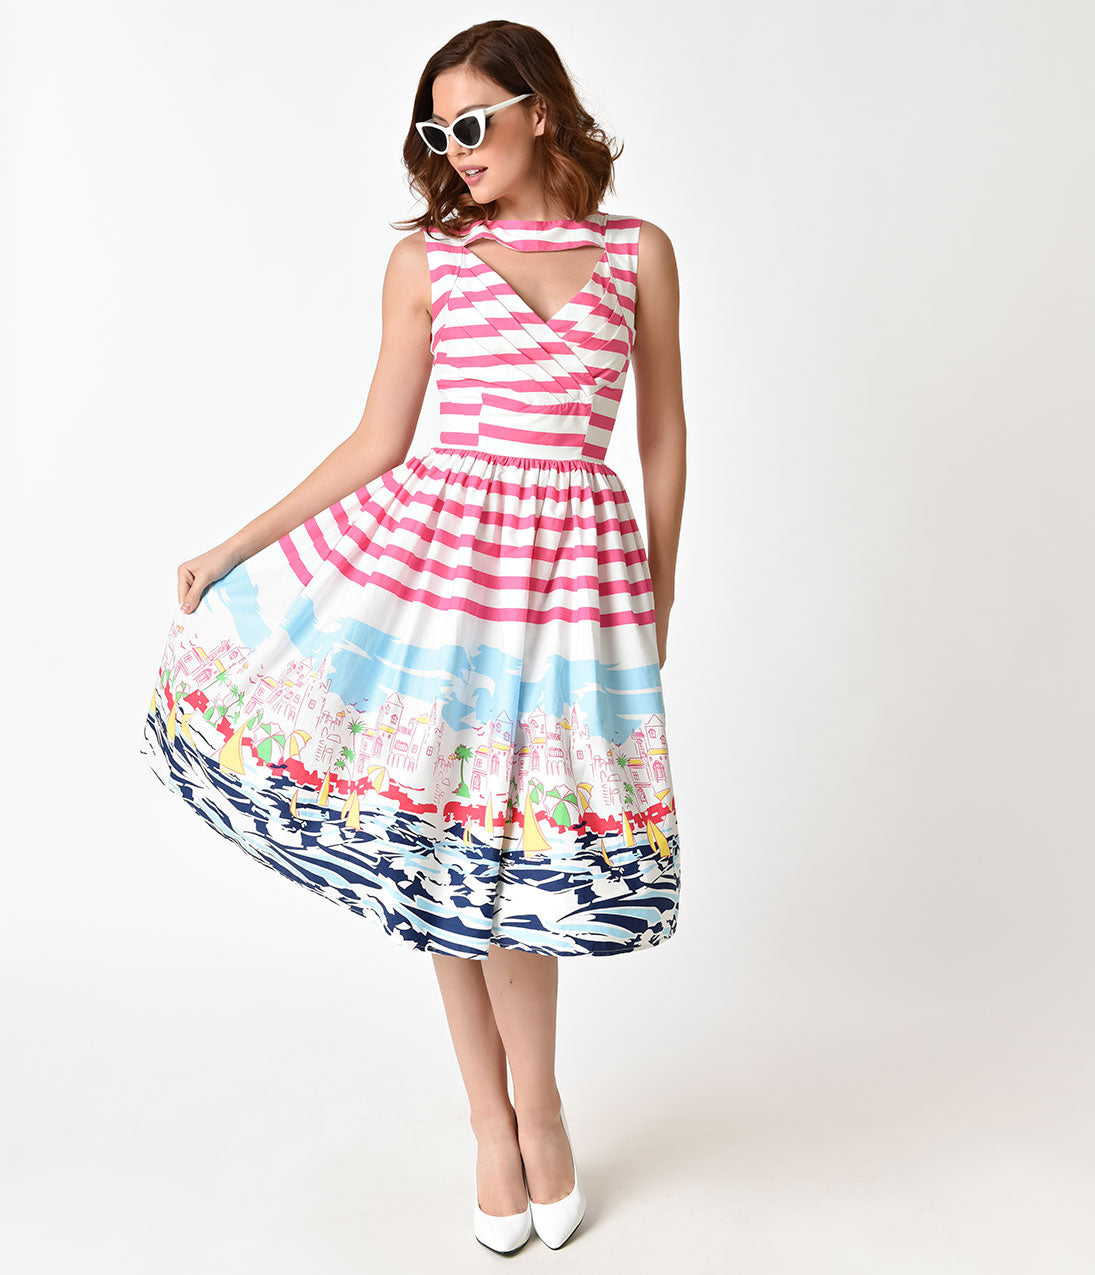 1950s Swing Dresses | 50s Swing Dress Unique Vintage 1950S Style Pink Stripe Seaside Sleeveless Shelly Swing Dress $74.00 AT vintagedancer.com